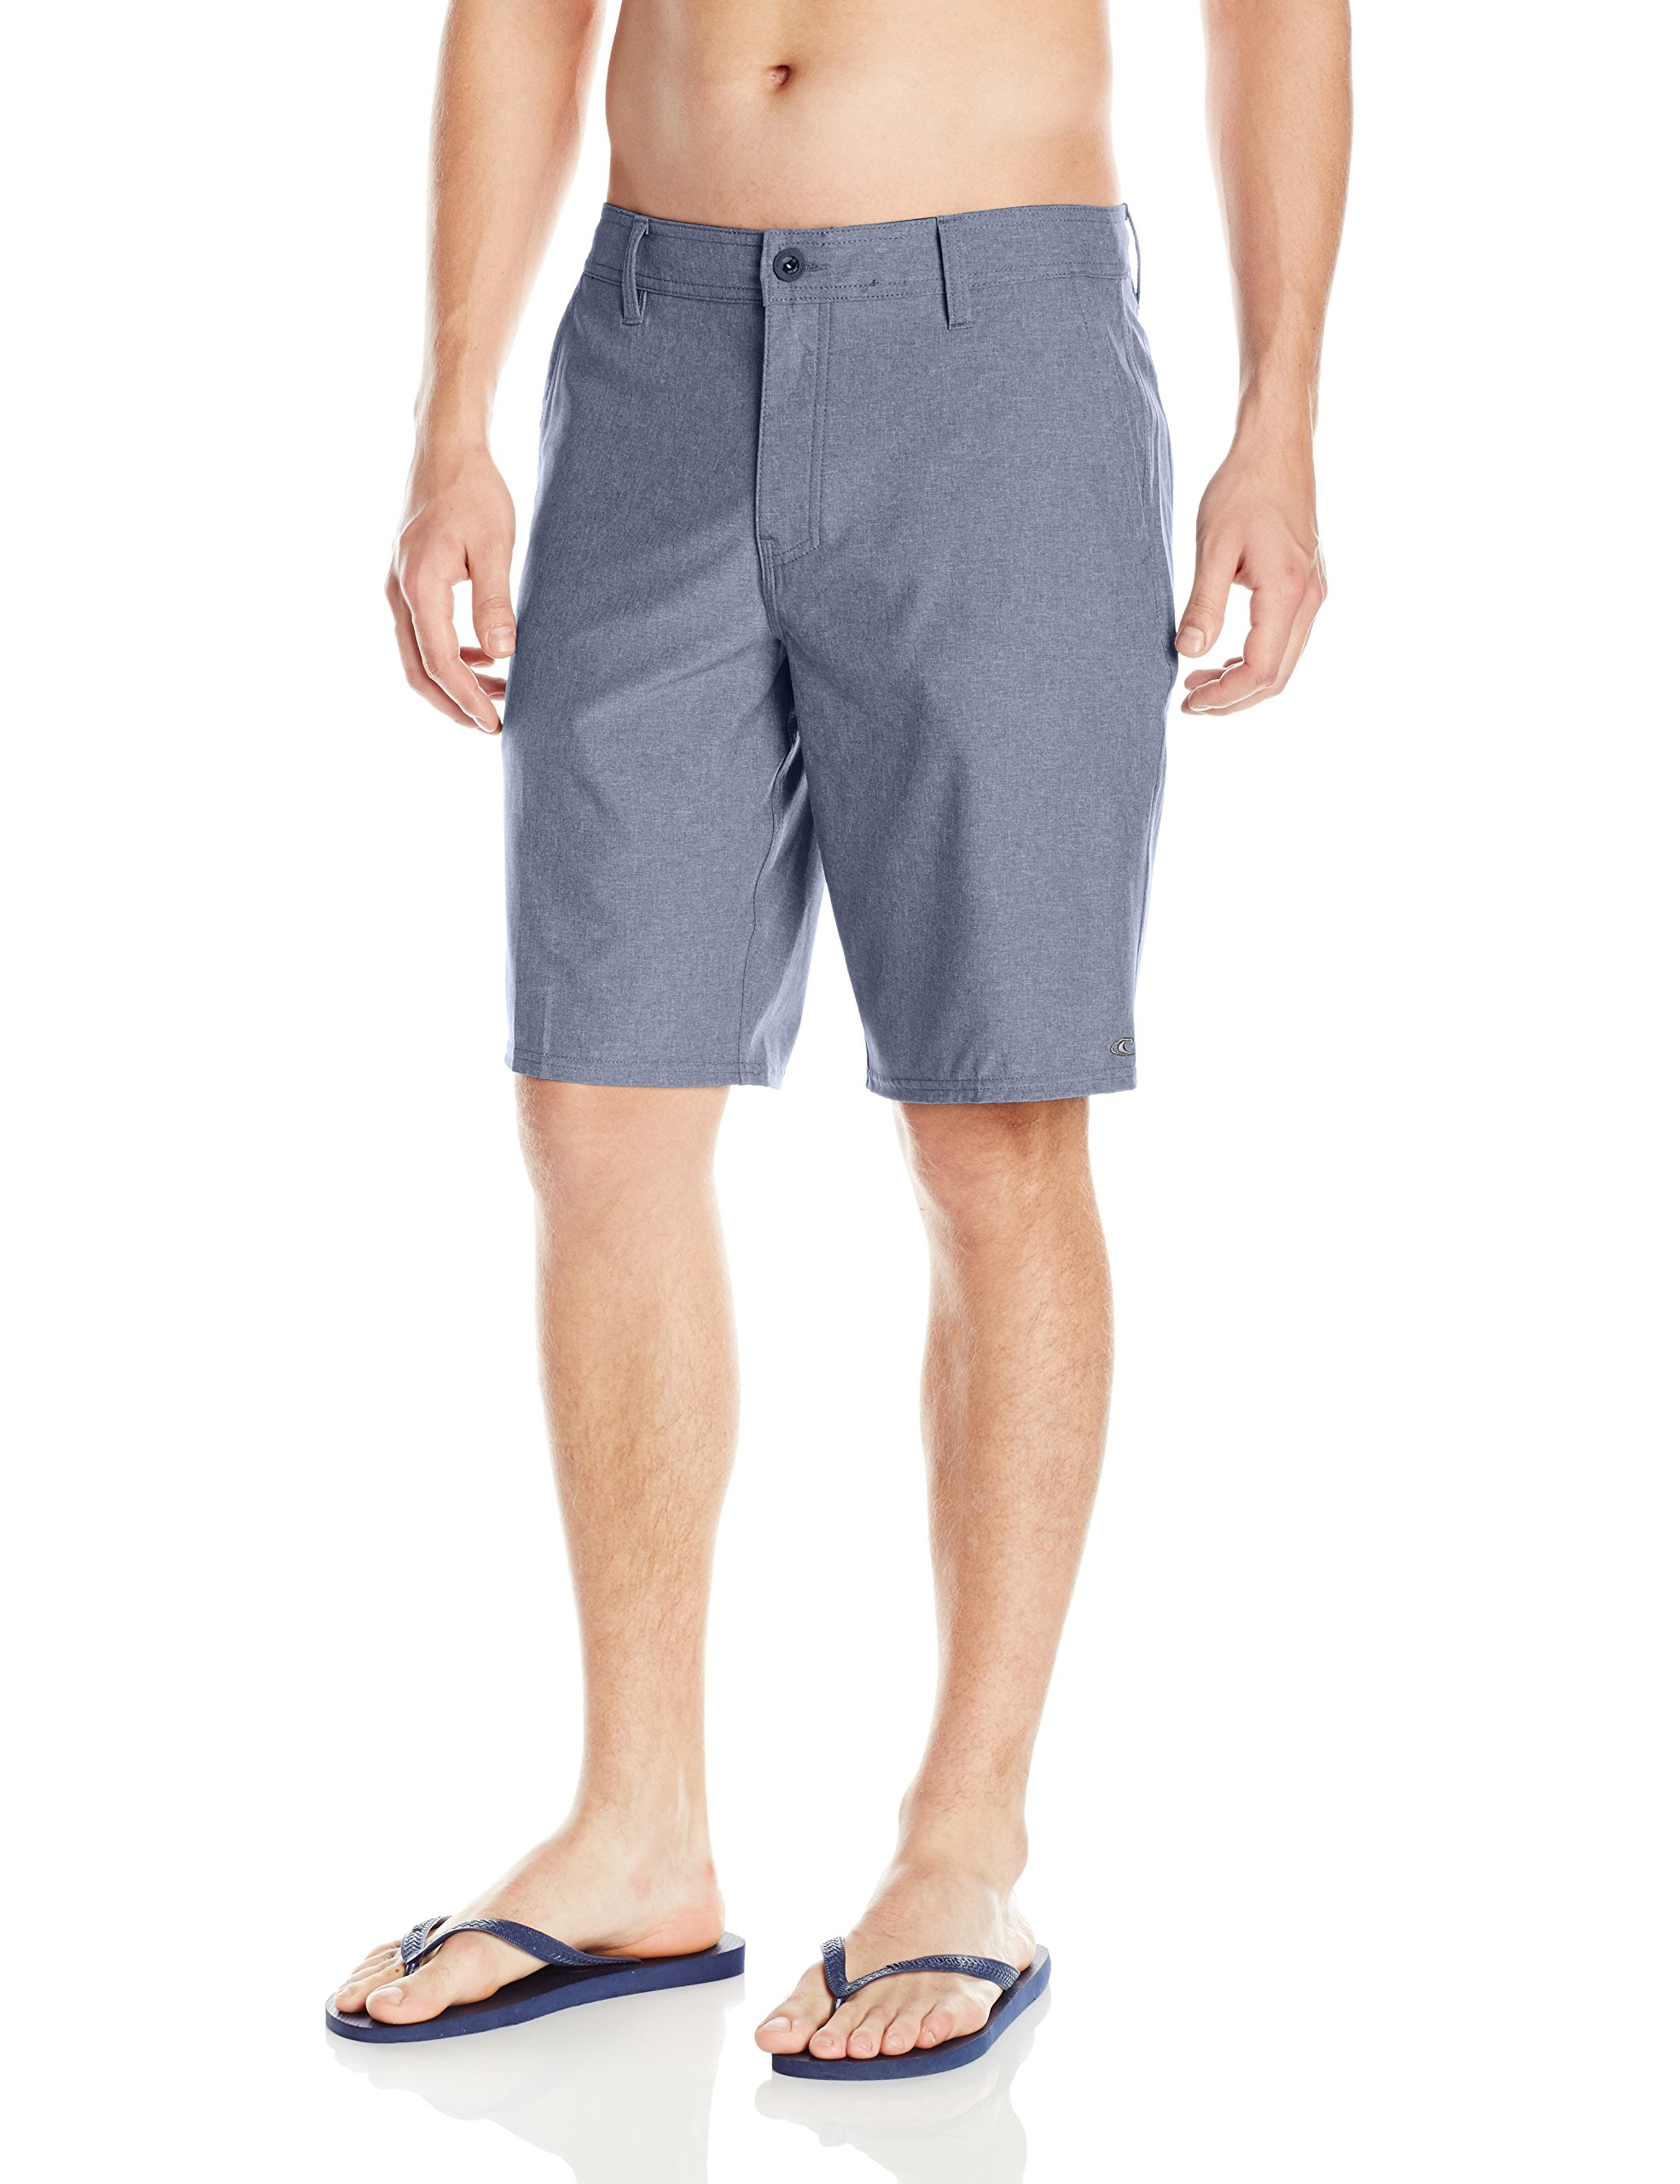 ca654d7008 Best Rated in Men's Board Shorts & Helpful Customer Reviews - Amazon.com